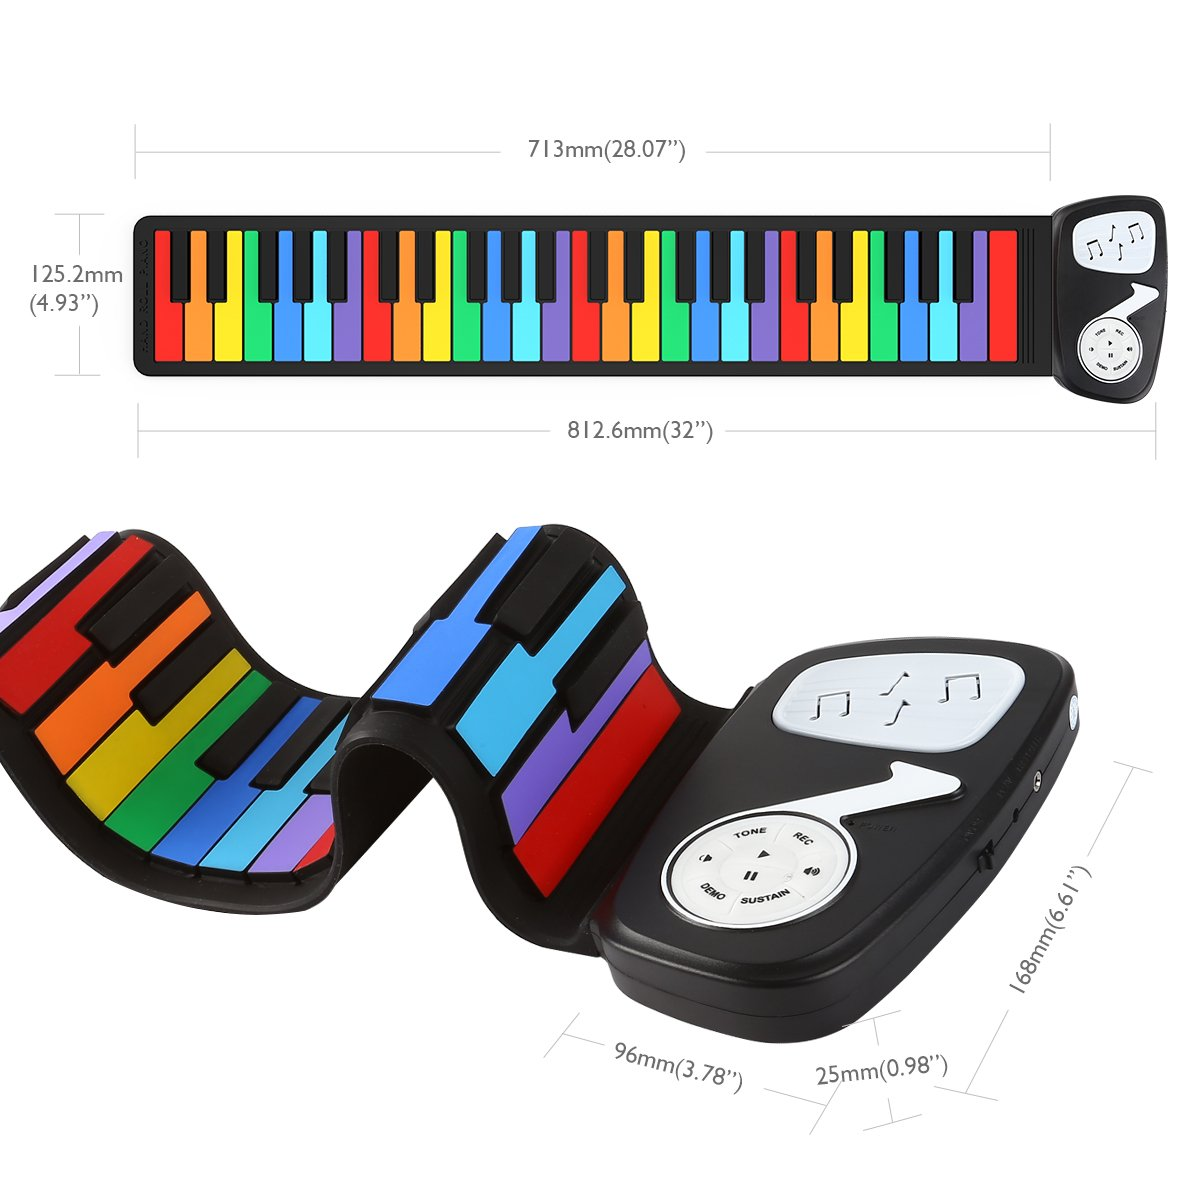 JouerNow Rainbow Roll Up Piano, with Music Scores - Play by Color, 49 Standard Keys with Built-in Speaker, Educational Toy, White by JouerNow (Image #2)